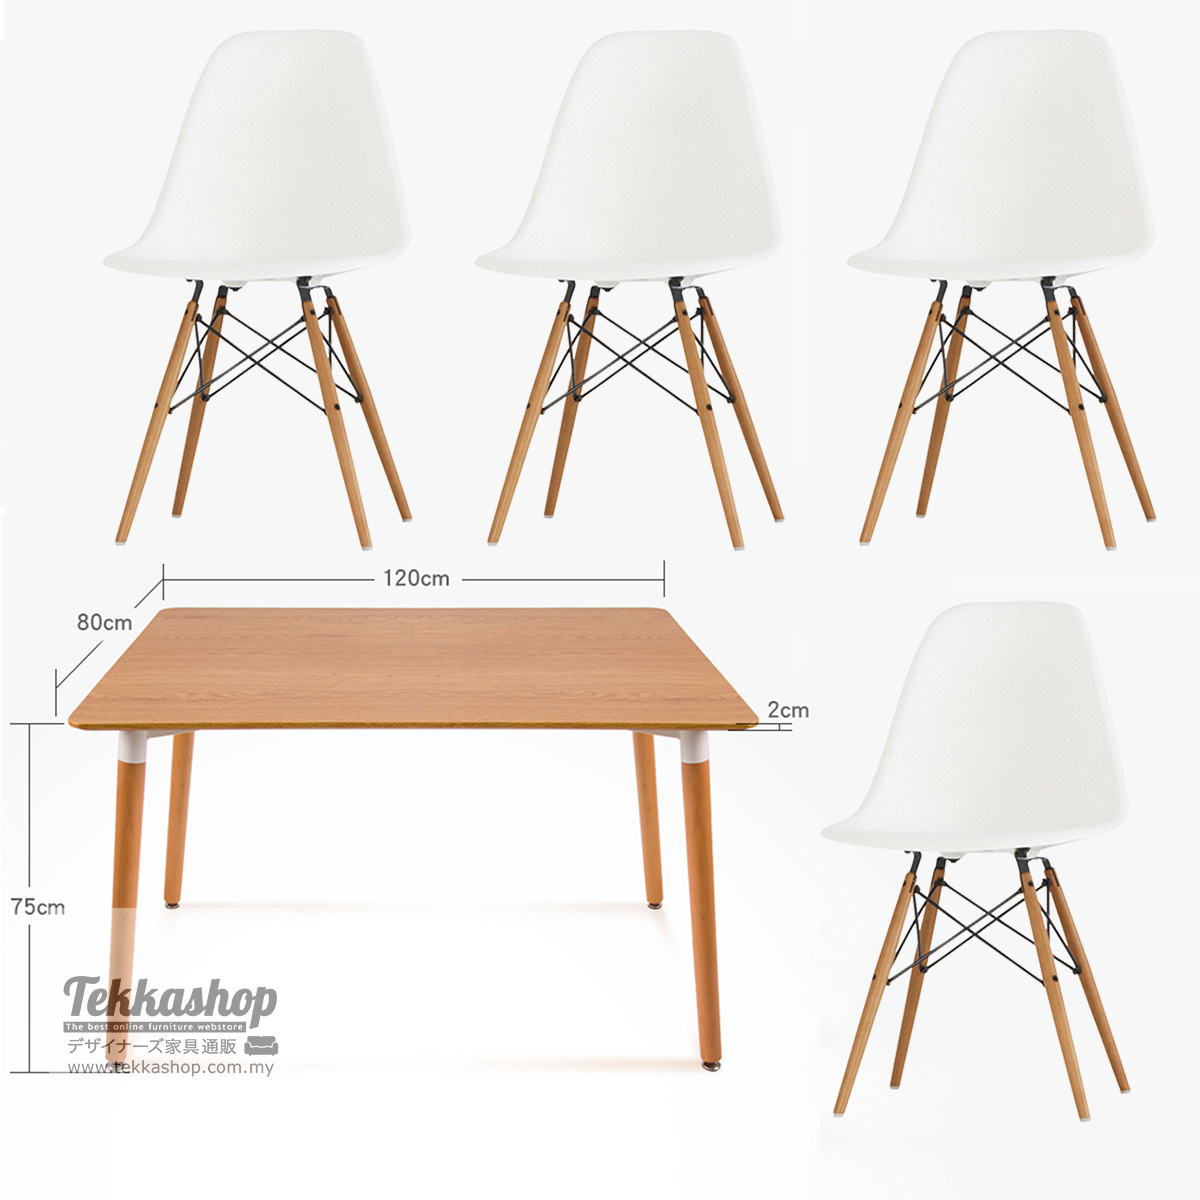 Tekkashop DT4025DC1099 Eames Dining table 4 x Eames Dining chairs